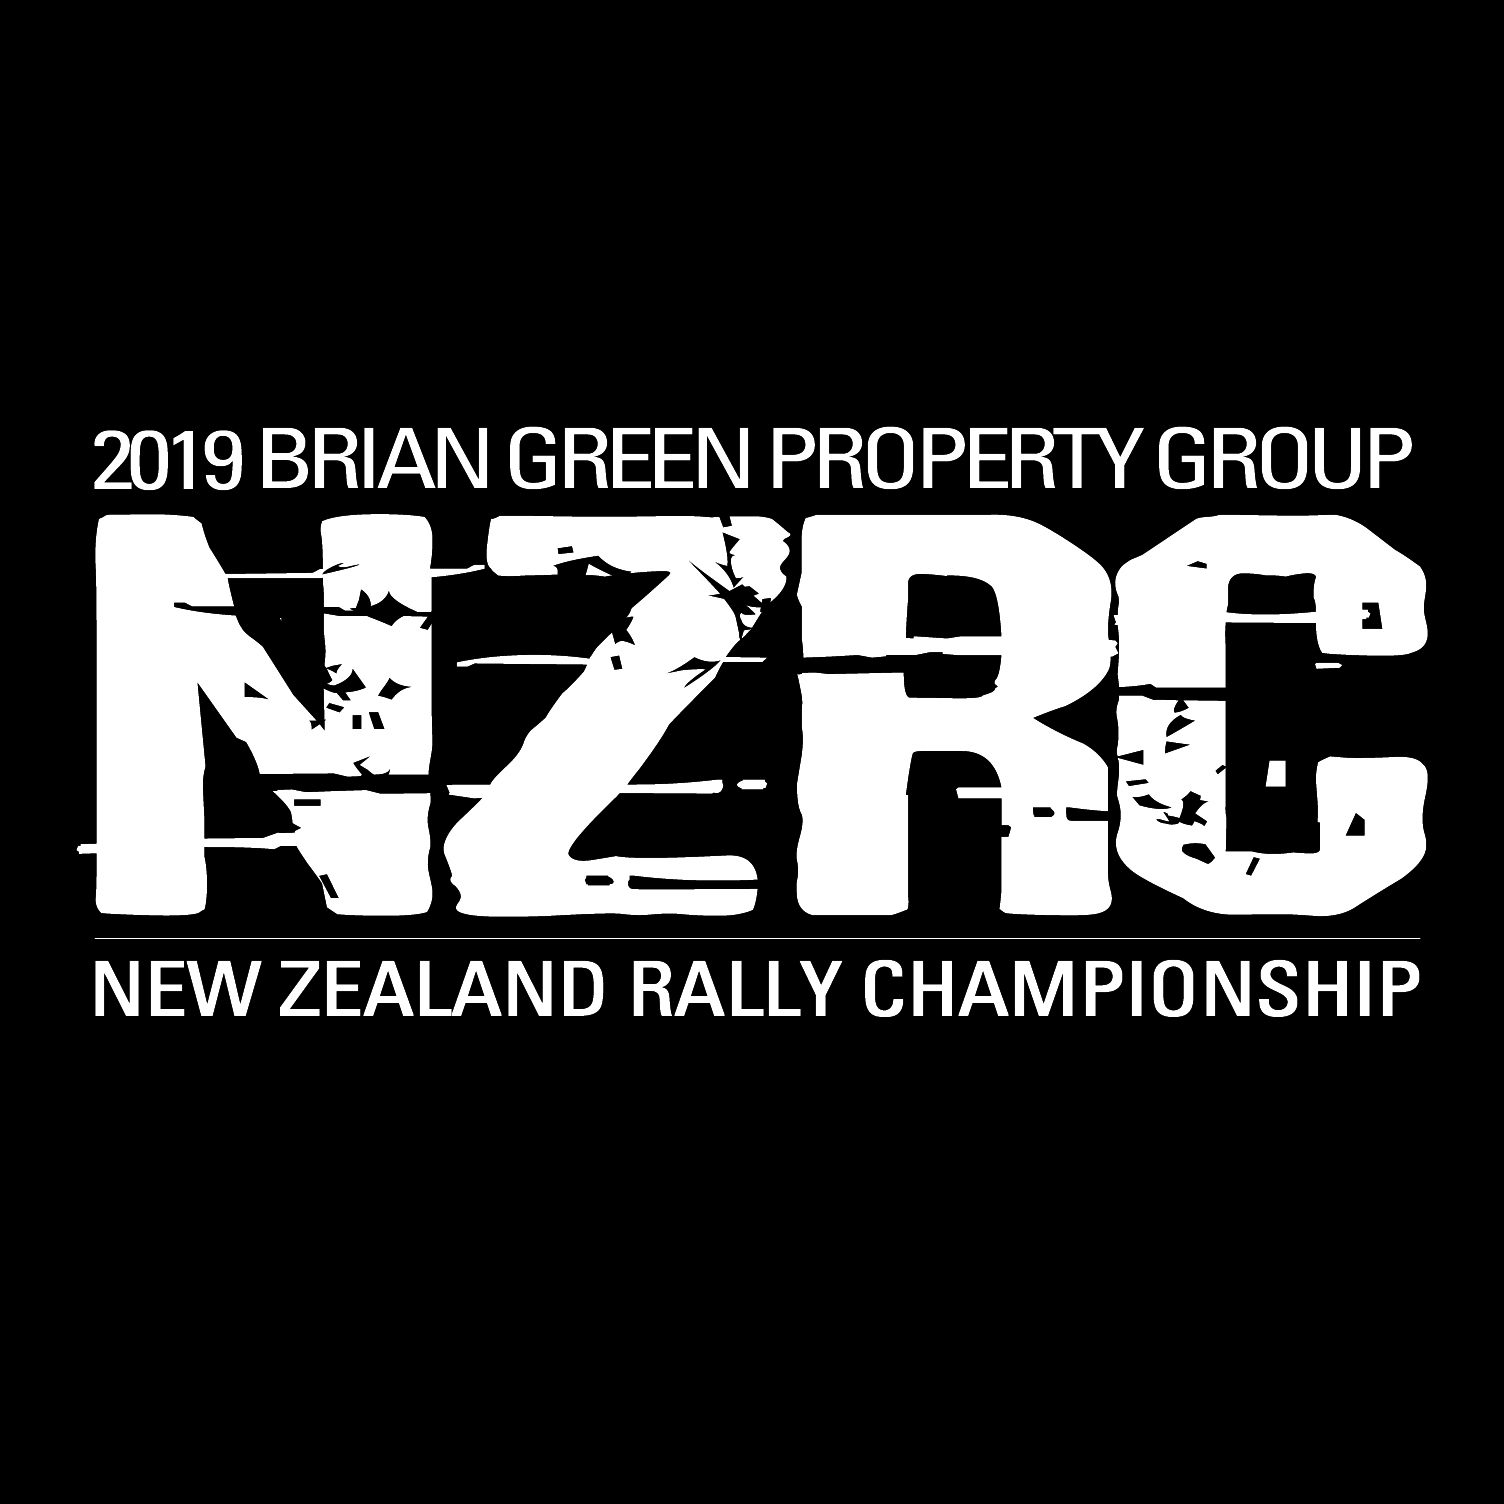 Youngsters announce themselves at hill climb | :: Brian Green Property Group New Zealand Rally Championship ::